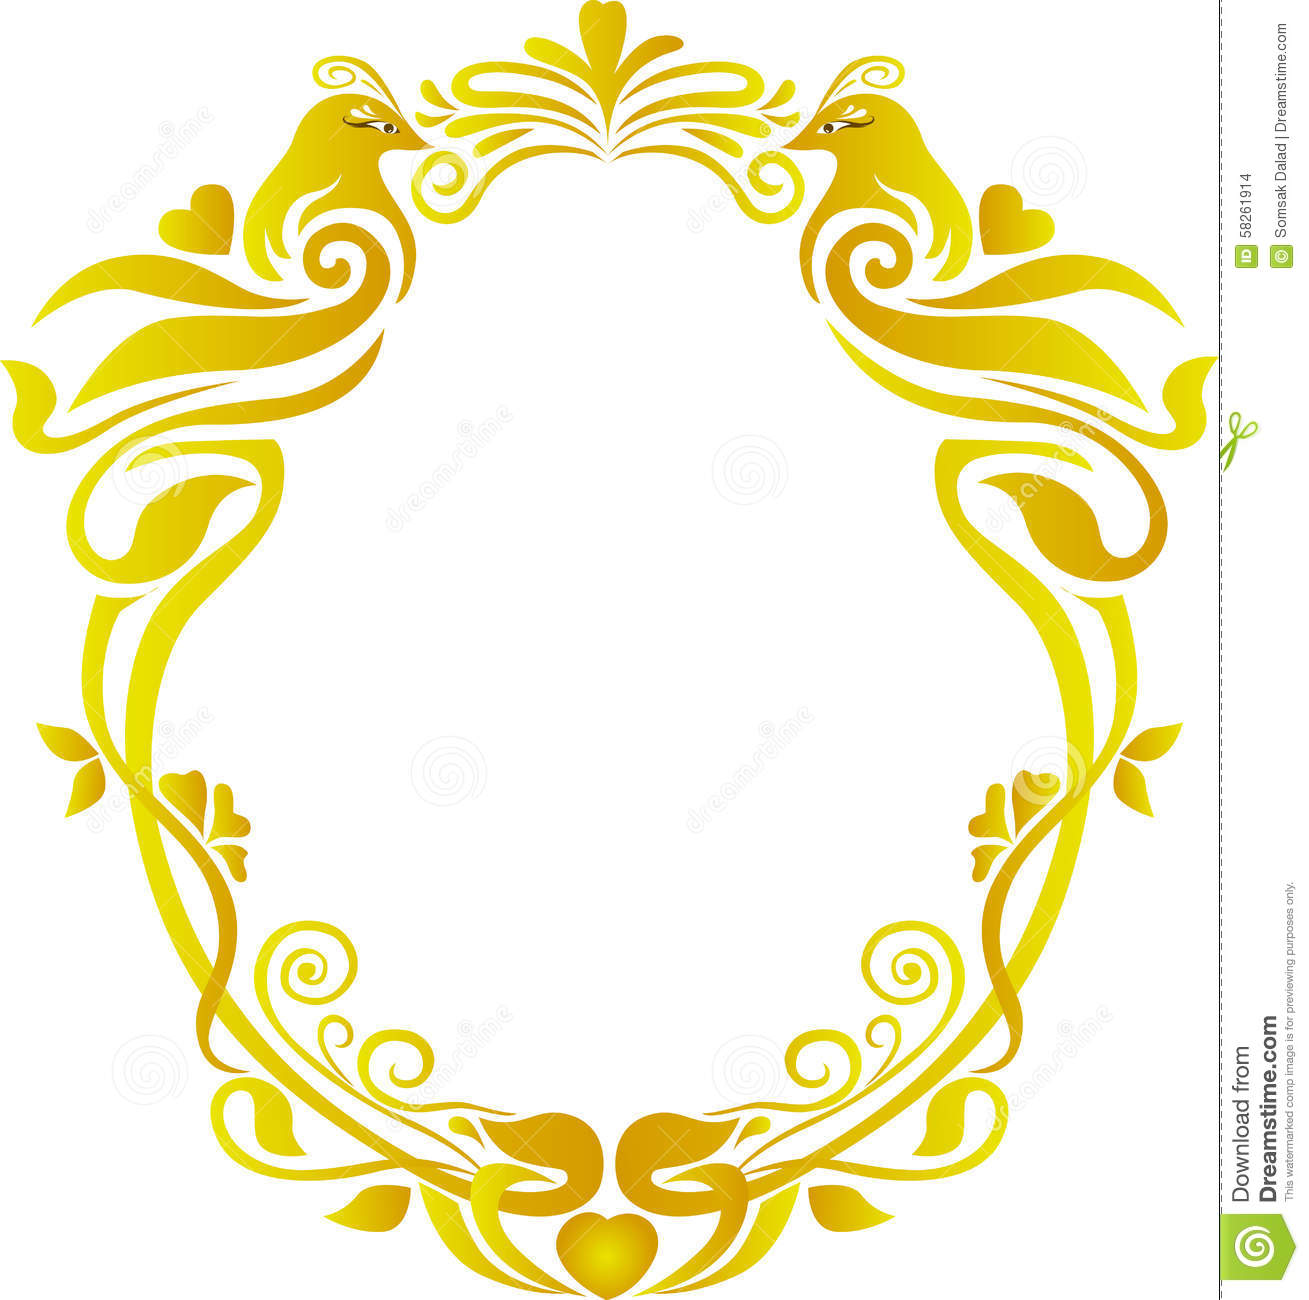 Gold Floral Frame Wedding Stock Vector Image 58261914